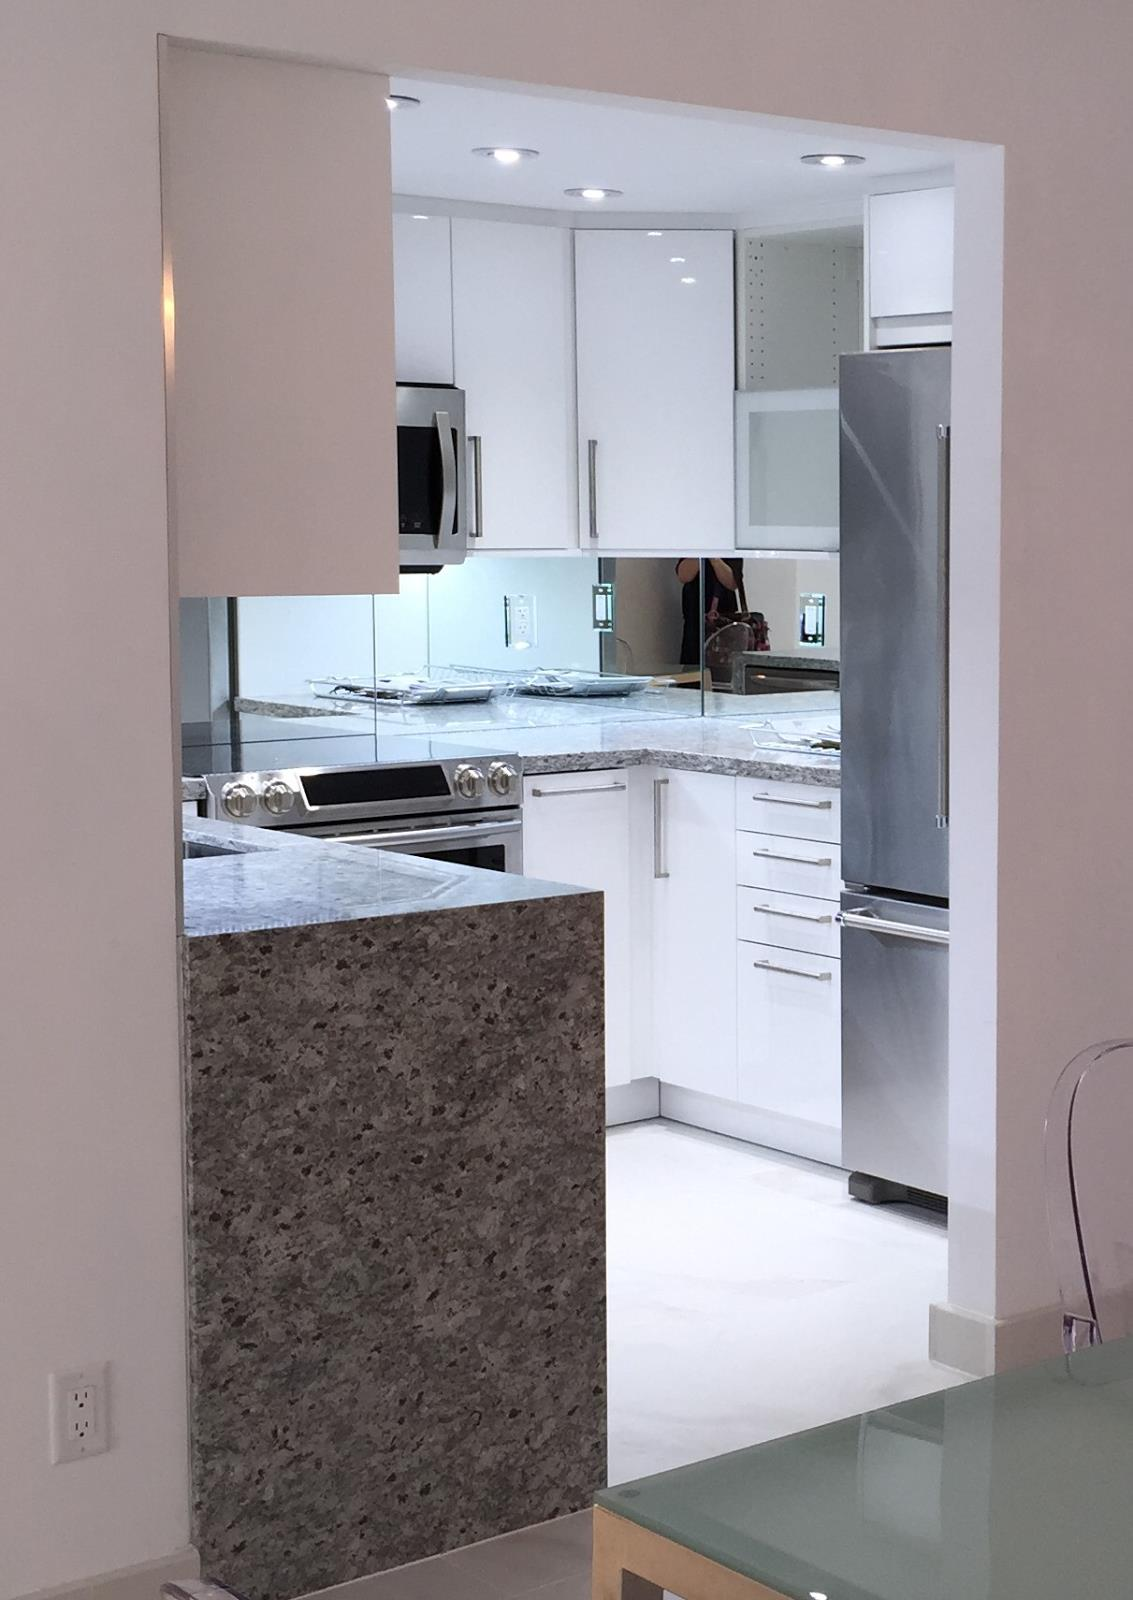 This Ikea Kitchen Is A Small Wonder Thanks To Ikd Magic